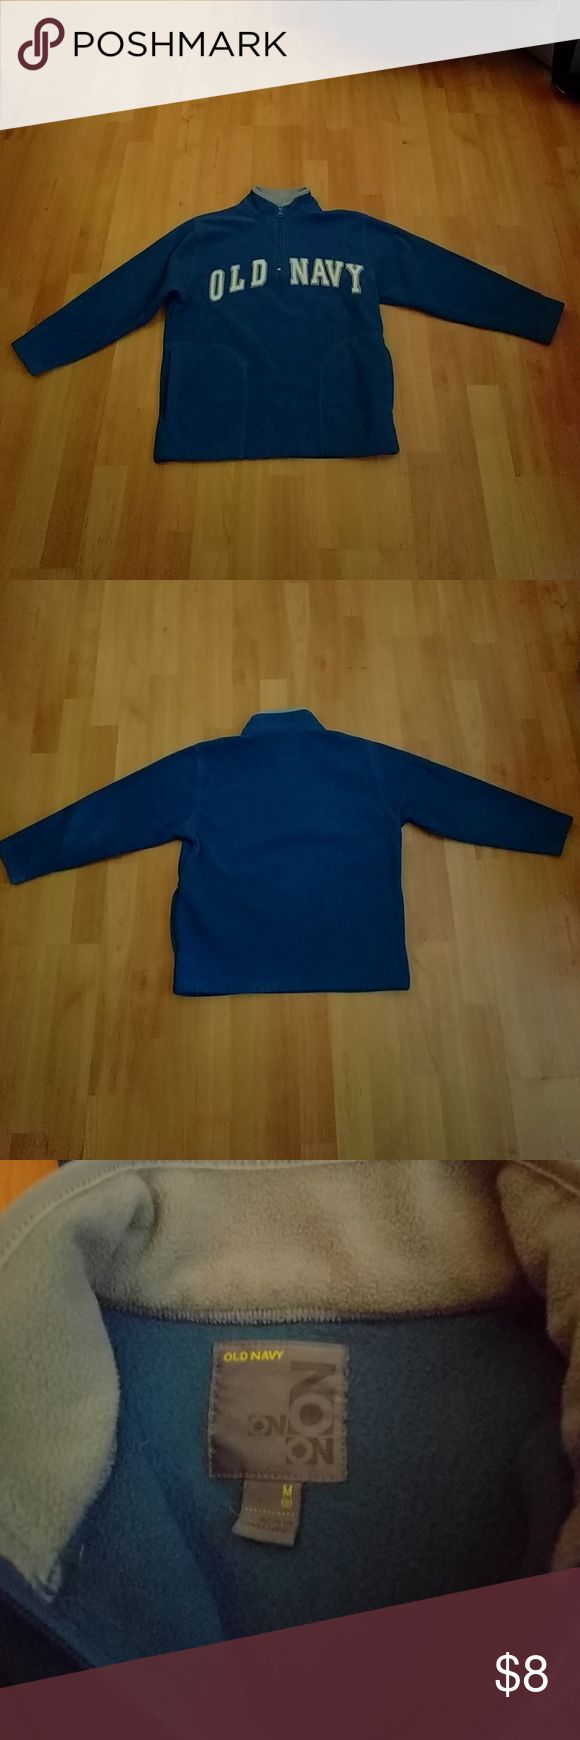 Boys Old Navy Half-Zipper Fleece This boys Old Navy brand pull- over, half zipper fleece is perfect for fall into the winter seasons. It has no flaws.and is blue and grey in color. Old Navy Jackets & Coats